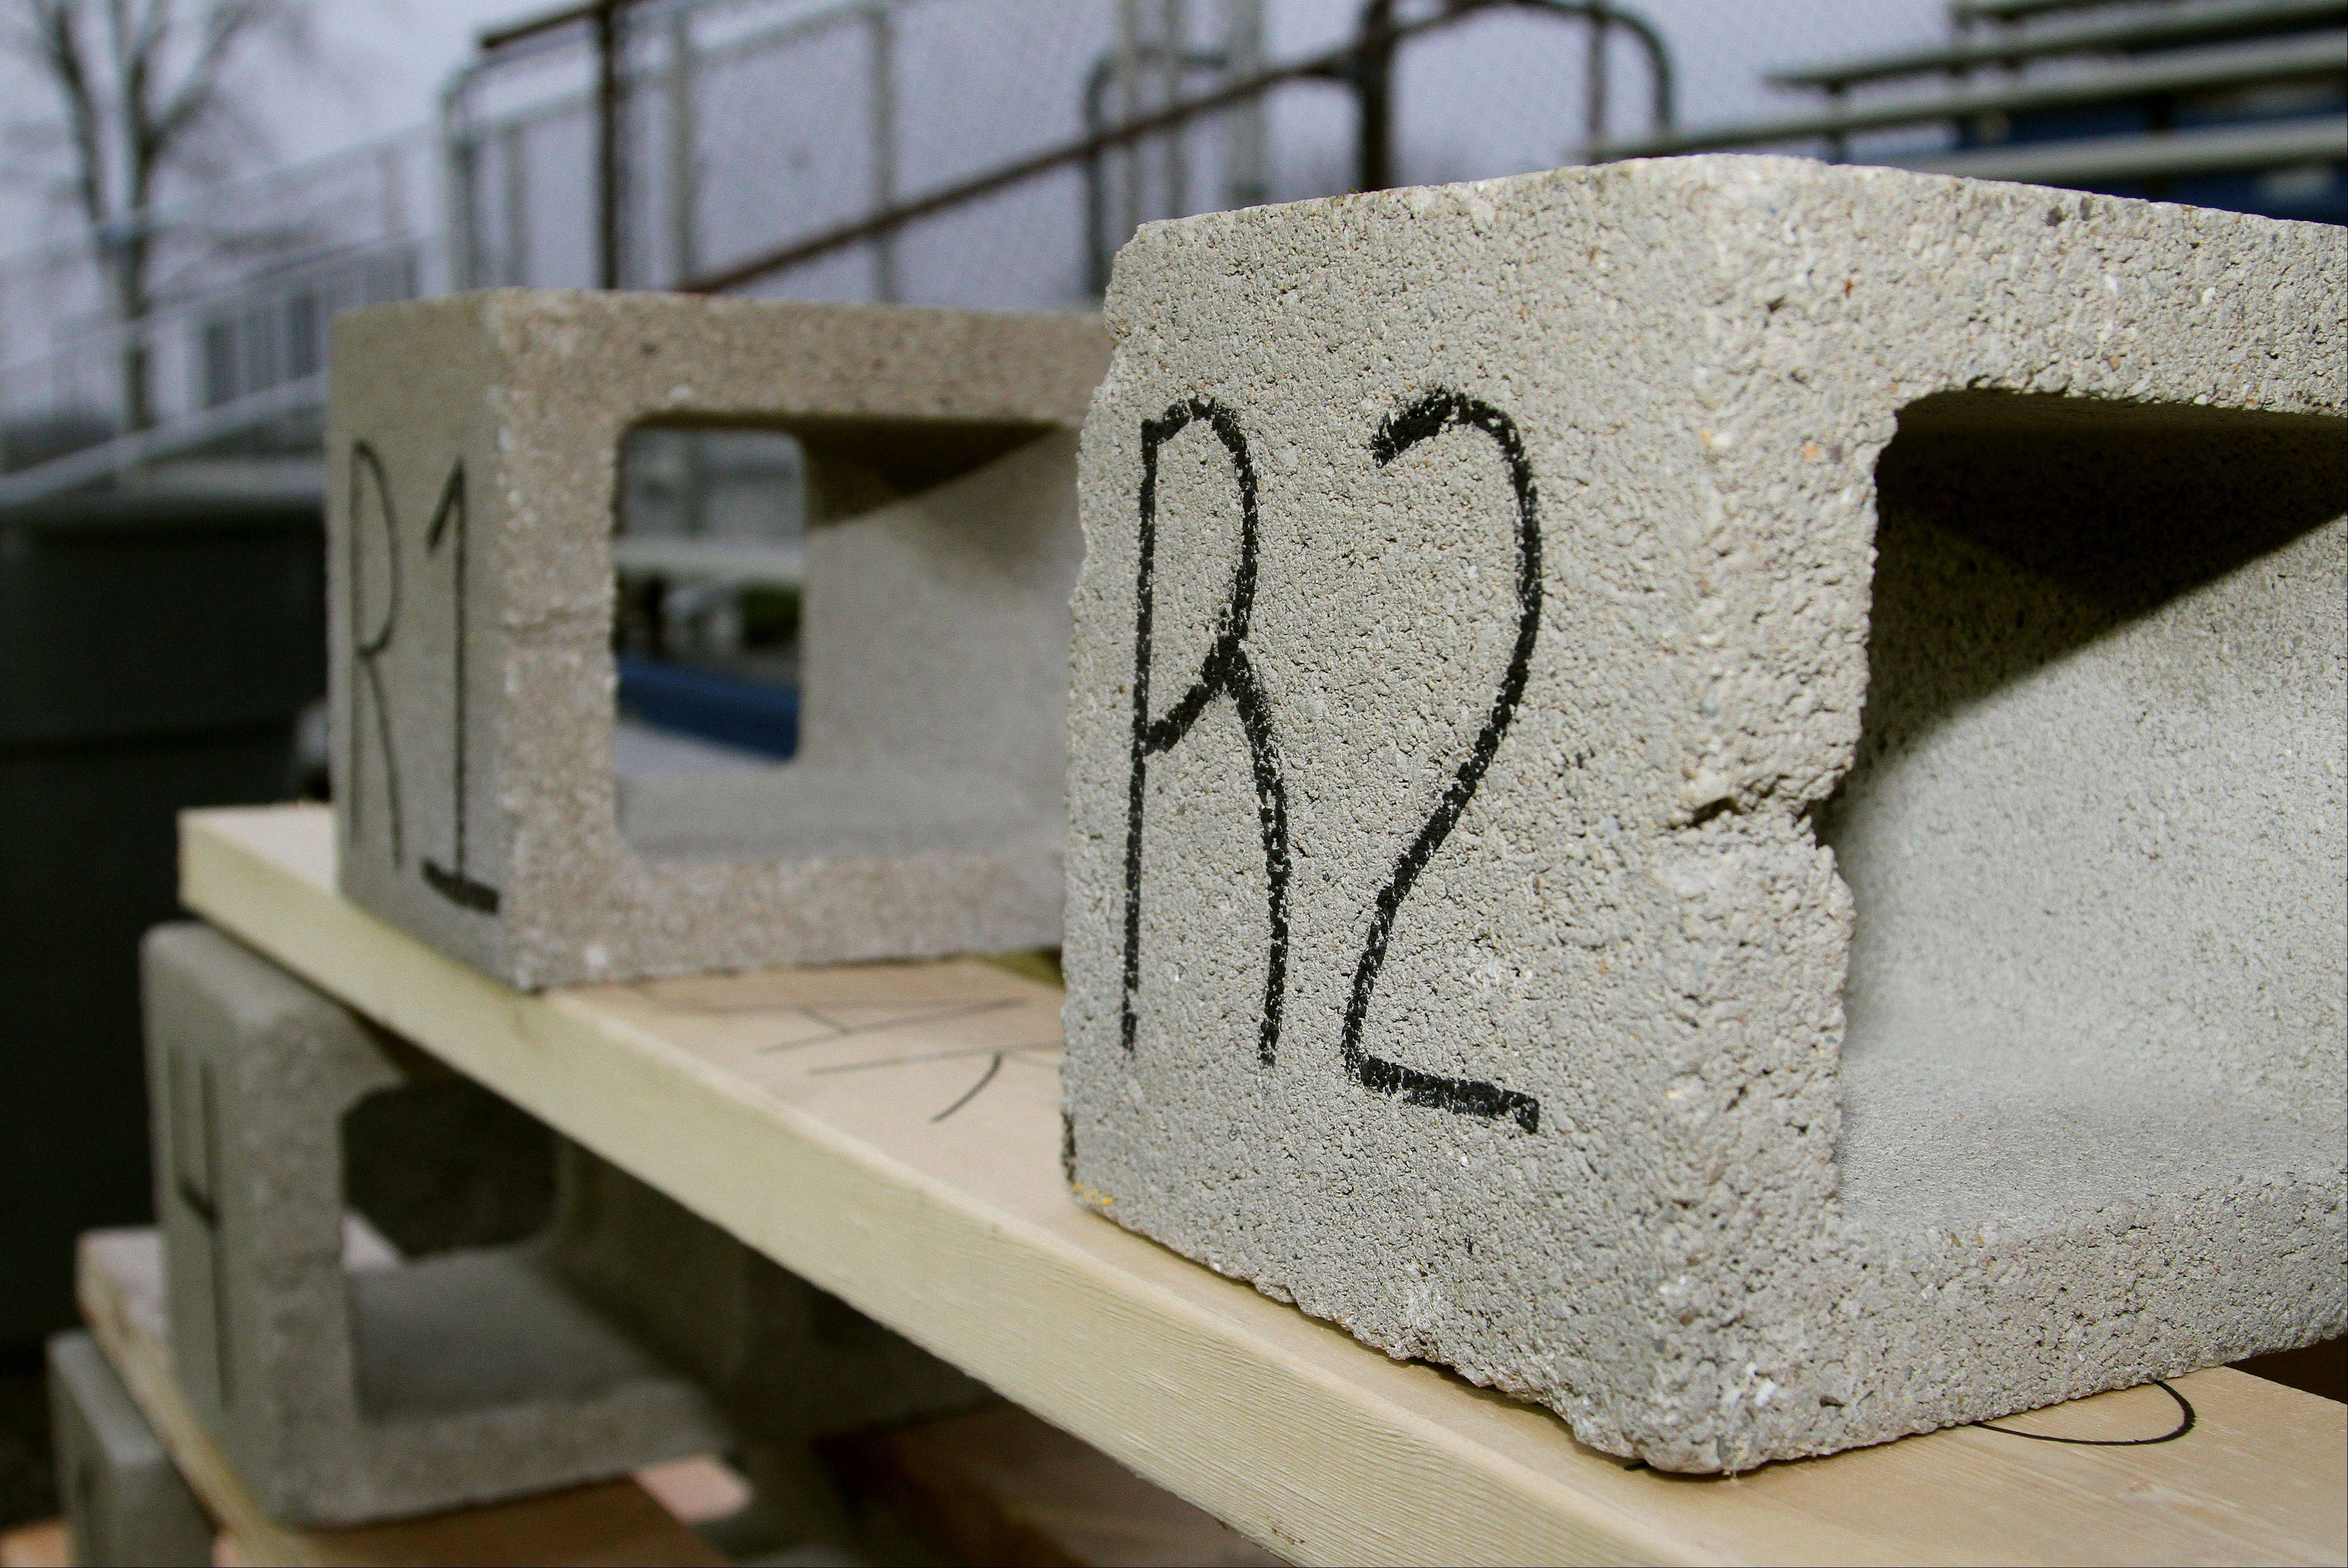 A cinder block structure resides in the North end zone of the Lake Zurich football stadium. Goals are written on the blocks as well as on the boards that hold them up. At the end of the season, all of the players' bricks get placed between the cinder blocks. The tradition began the year LZ won state, in 2007.